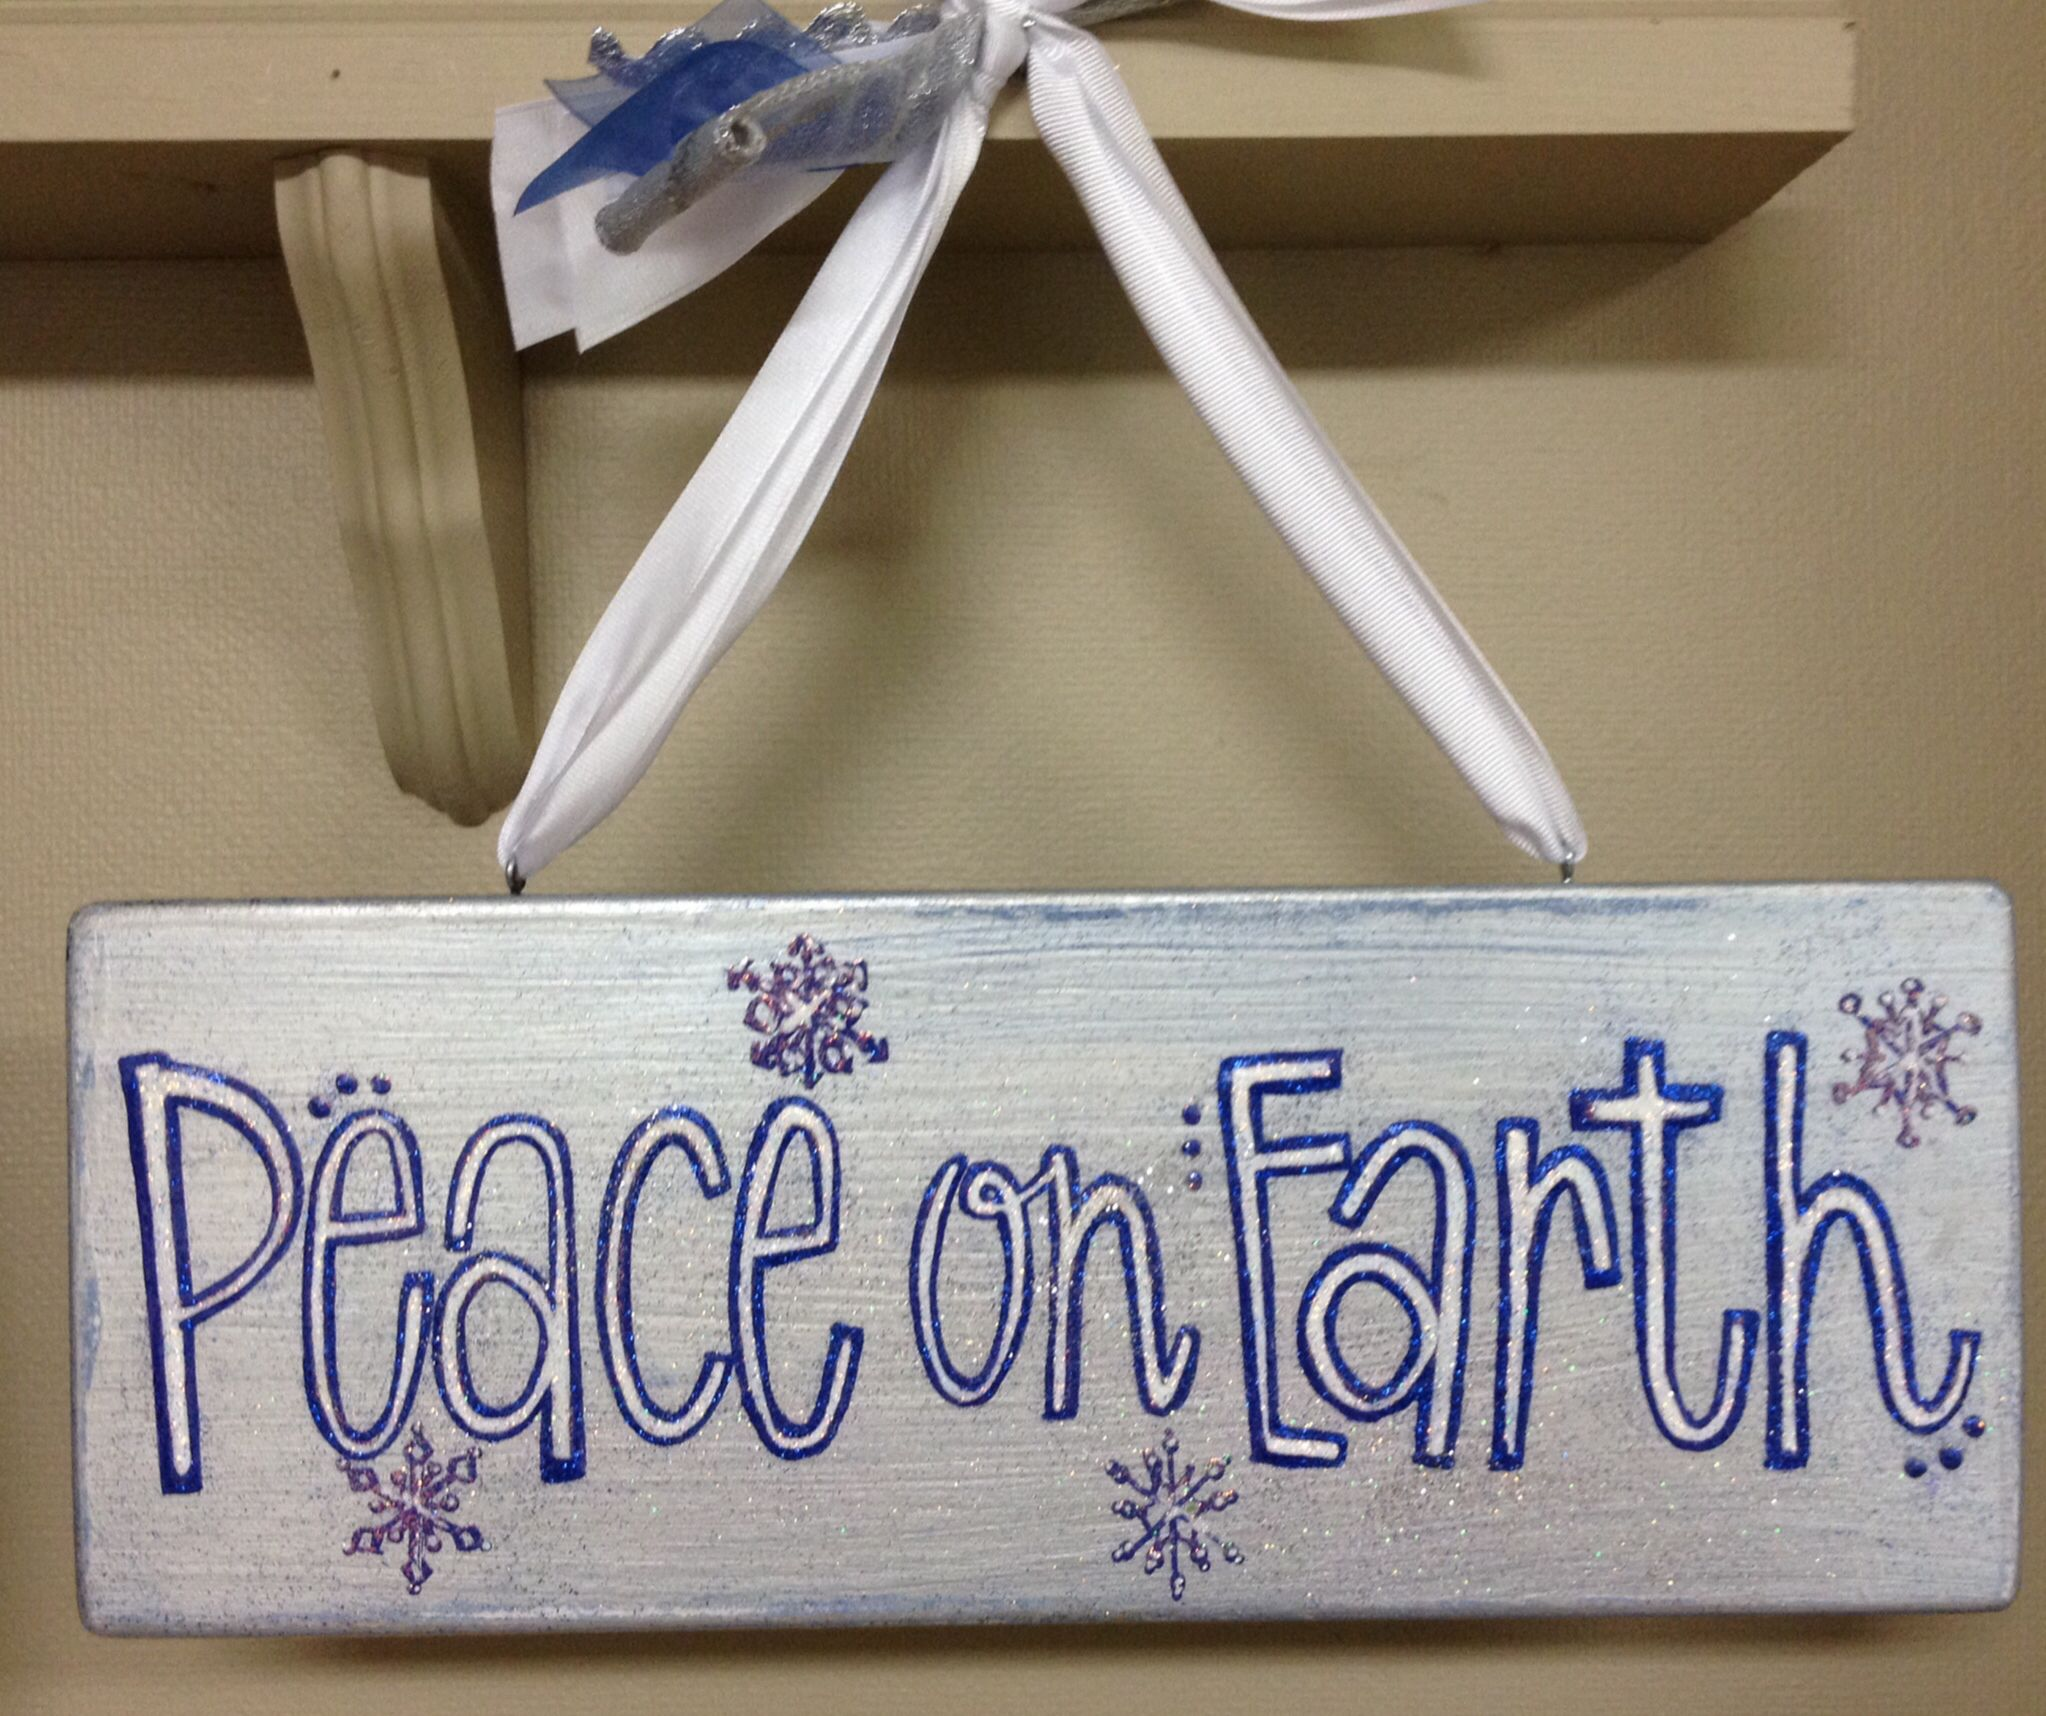 Hand-painted Holiday Sign by Peggy Prissylilybypeggy@gmail.com